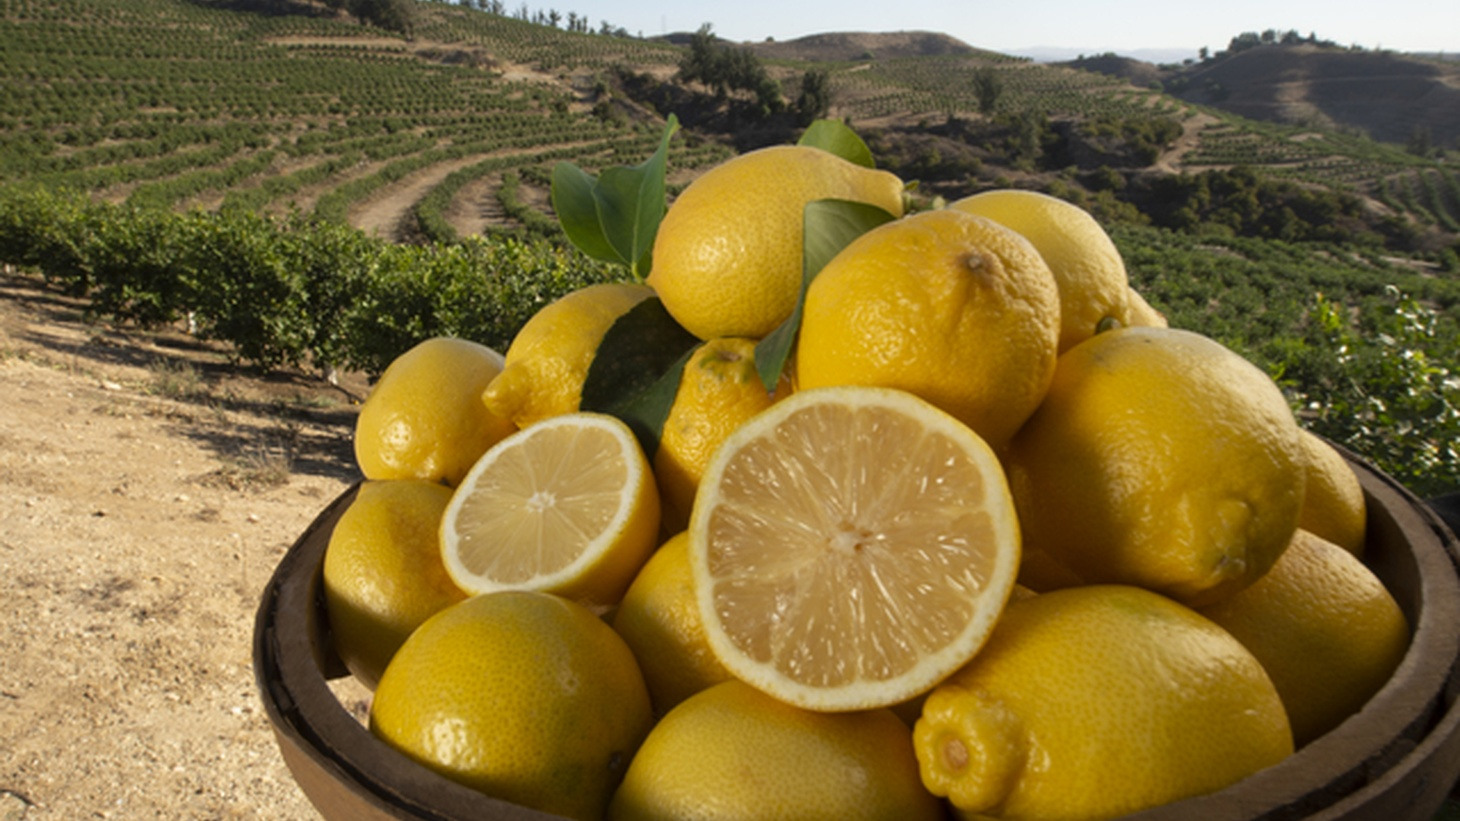 A Wonderful seedless lemon at Lemon Hill in Somis, CA.